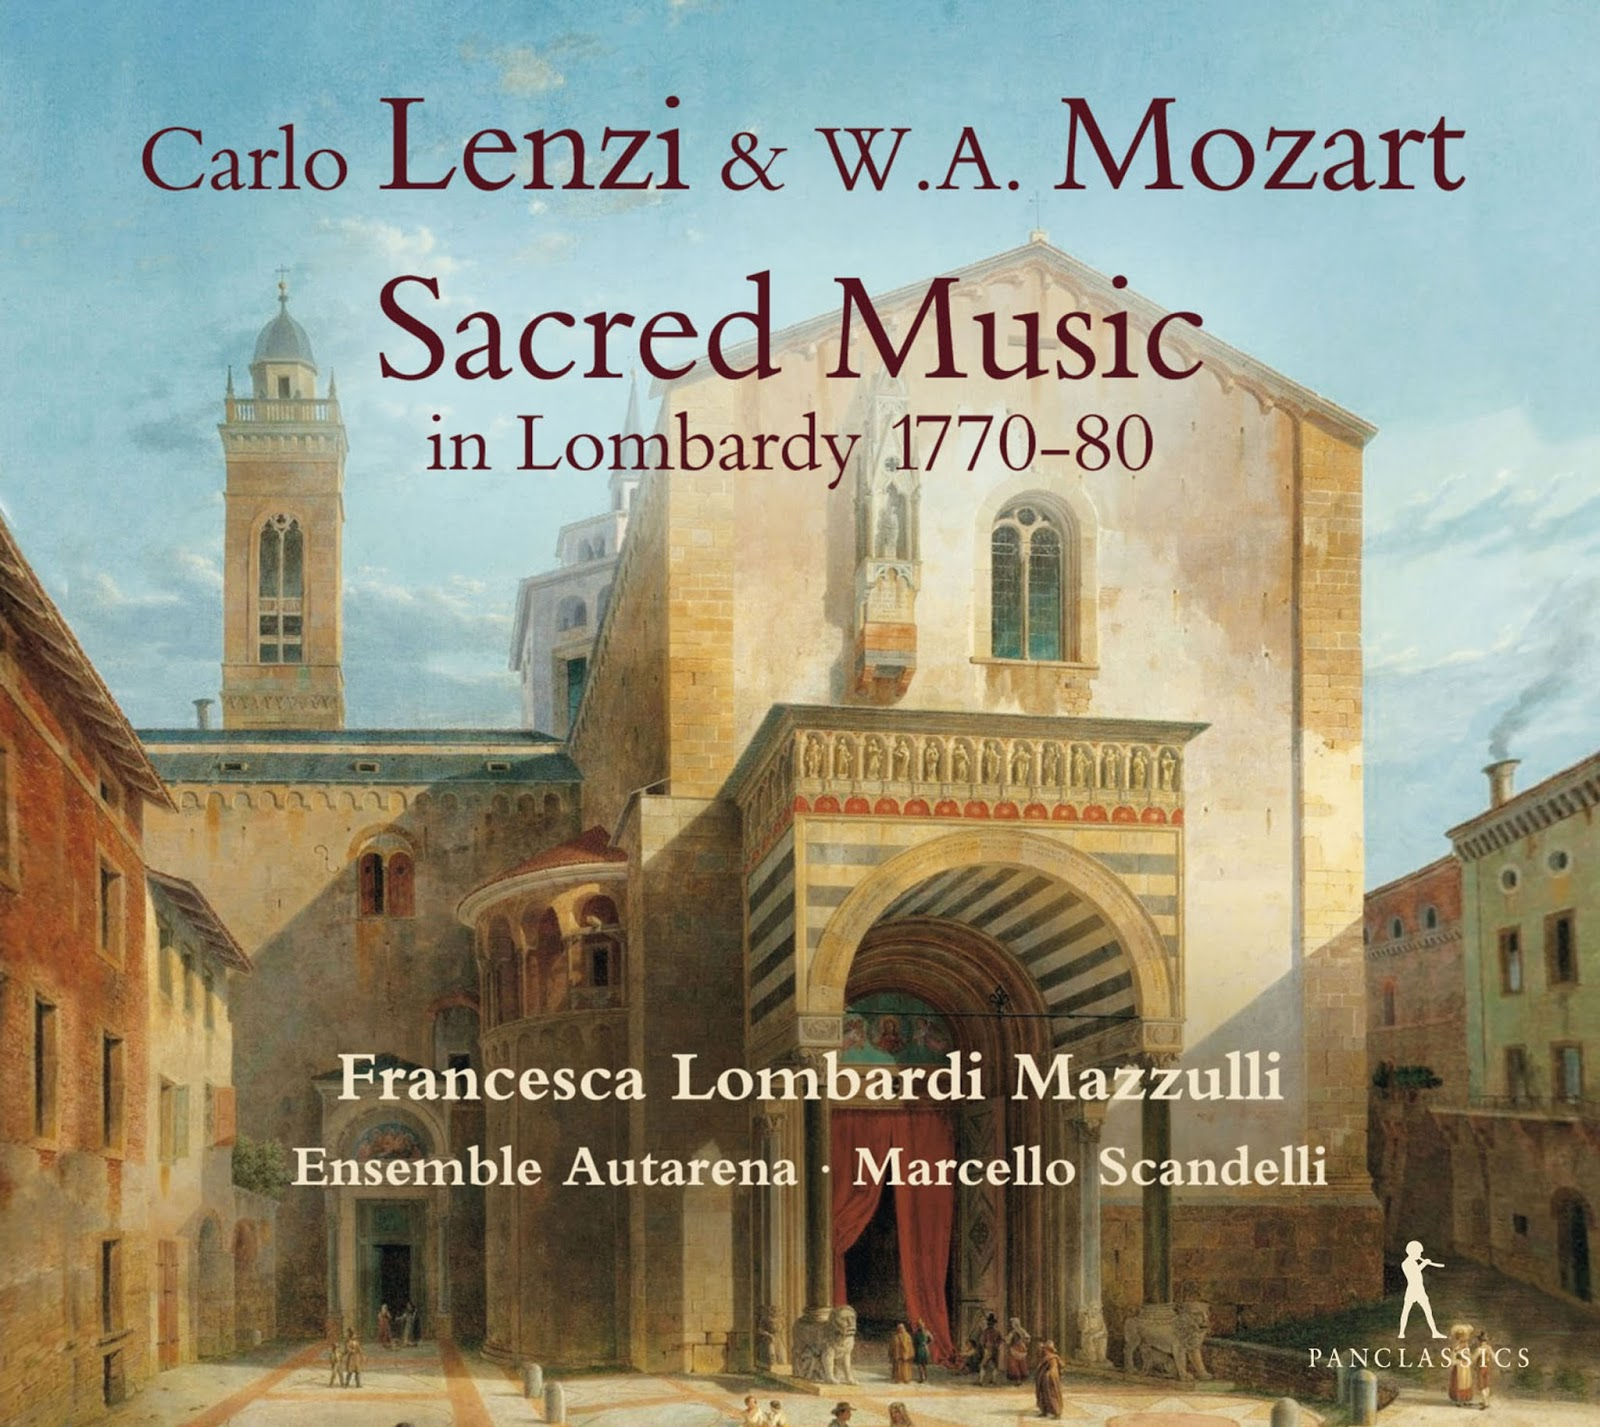 RECORDING OF THE MONTH | February 2017: Carlo Lenzi & Wolfgang Amadeus Mozart - SACRED MUSIC IN LOMBARDY 1770-80 (Pan Classics PC 10364)